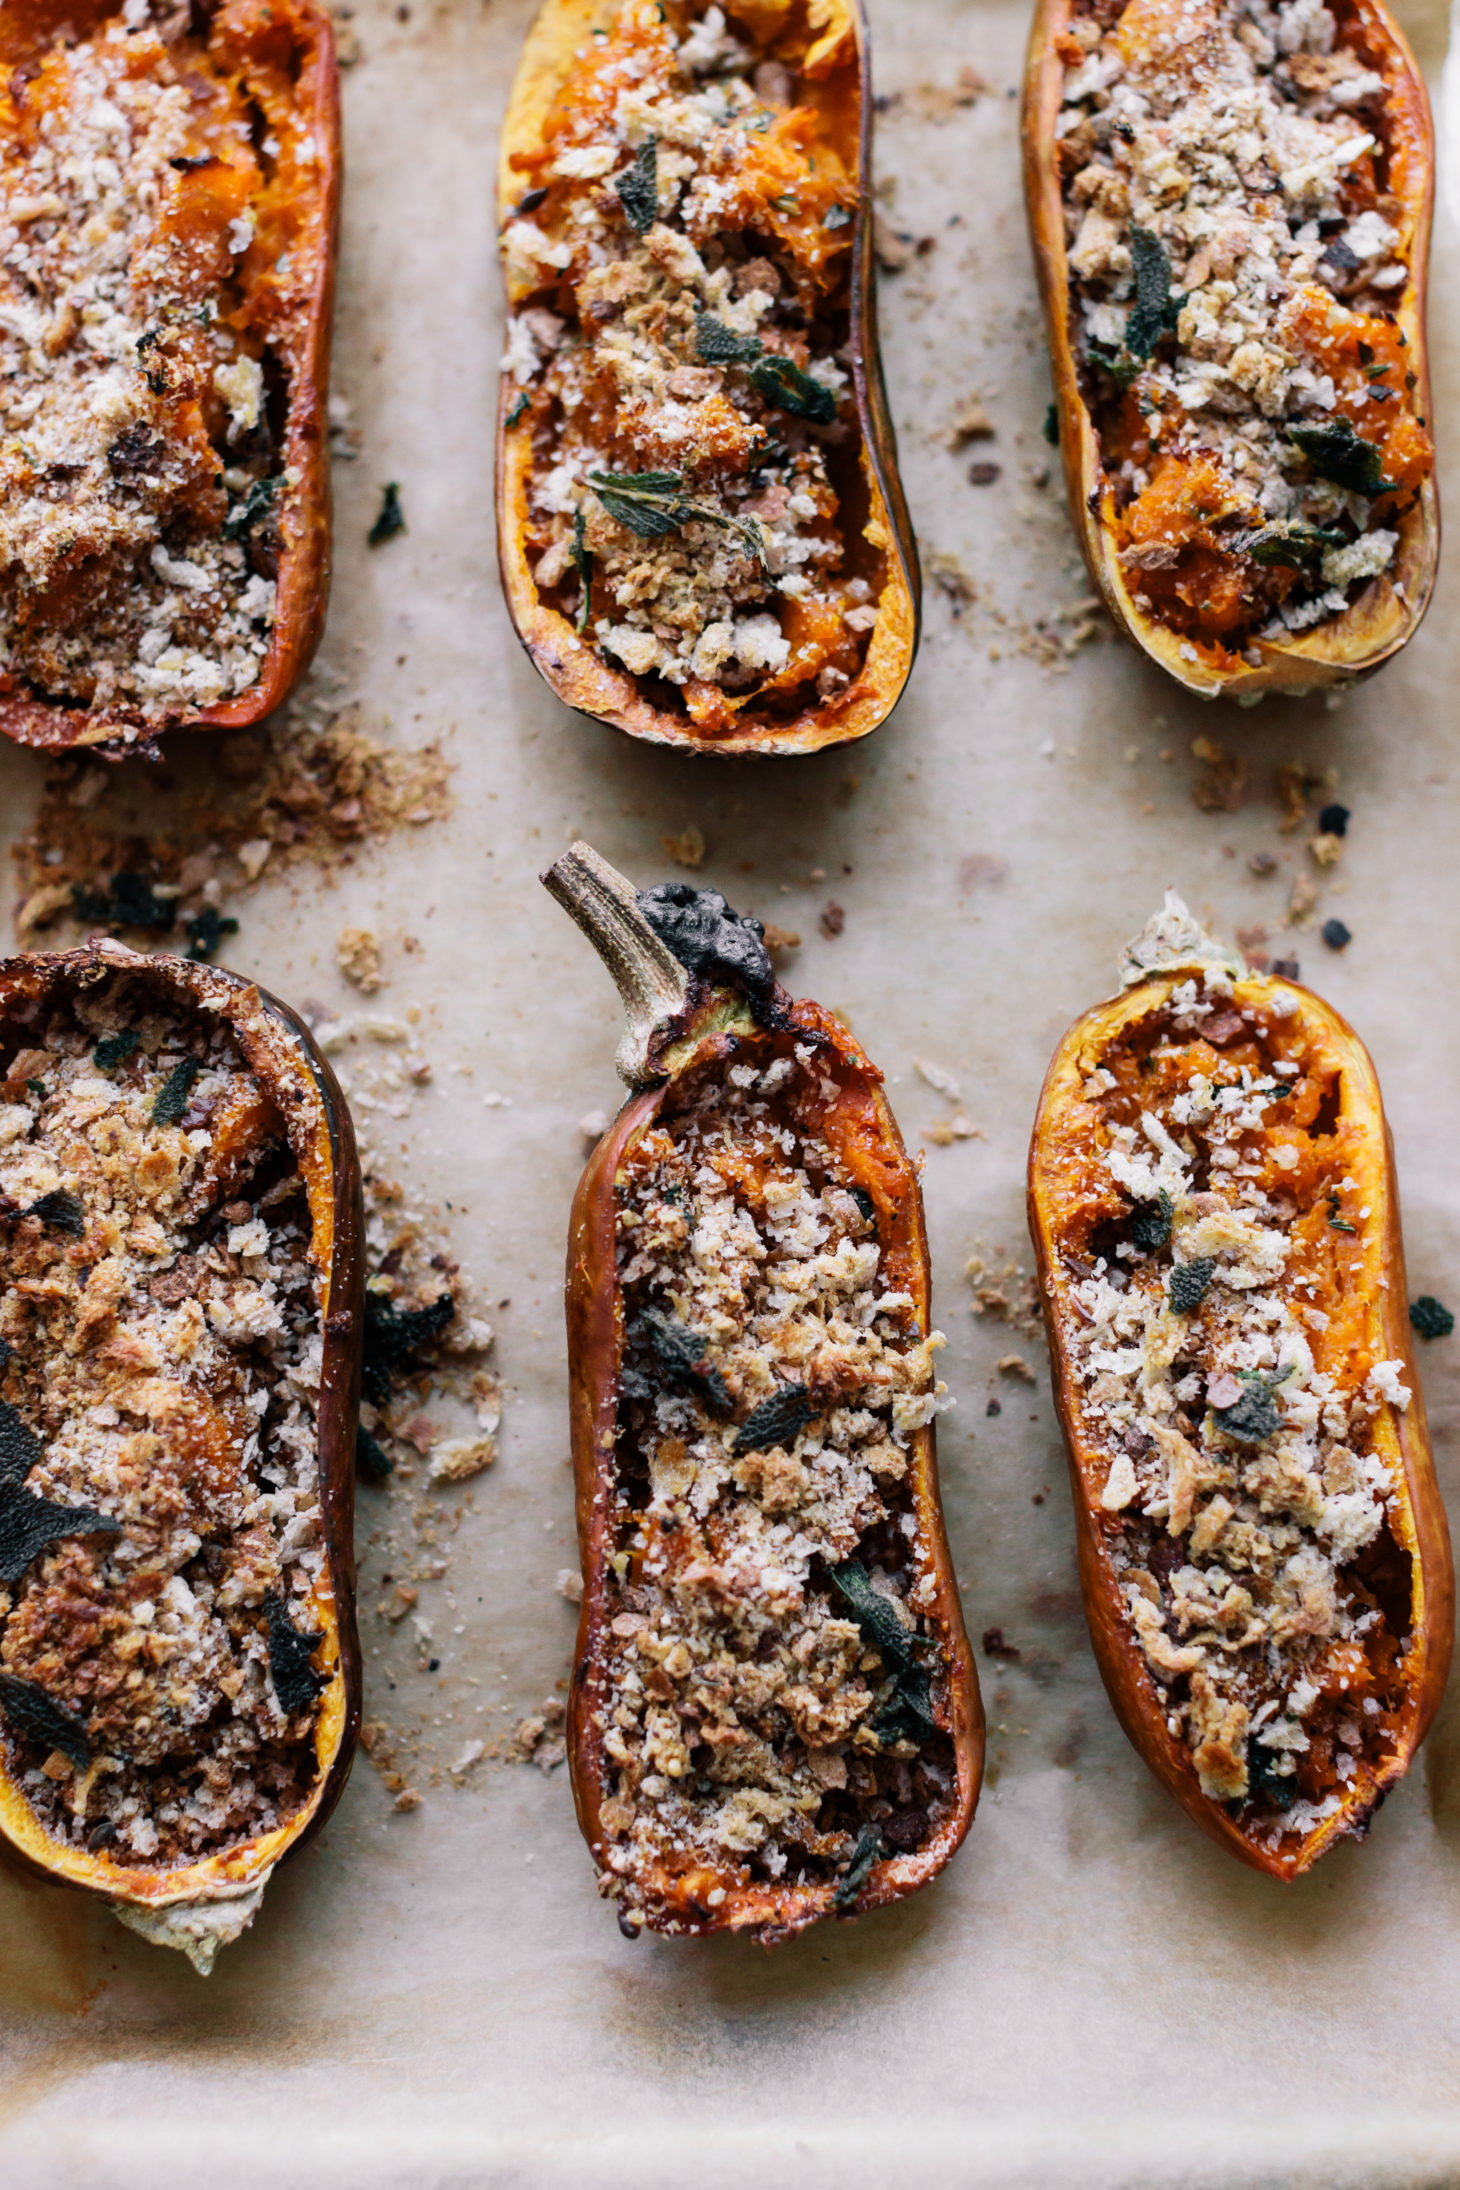 Overhead photo of twice-baked honeynut squash with breadcrumbs and brown butter